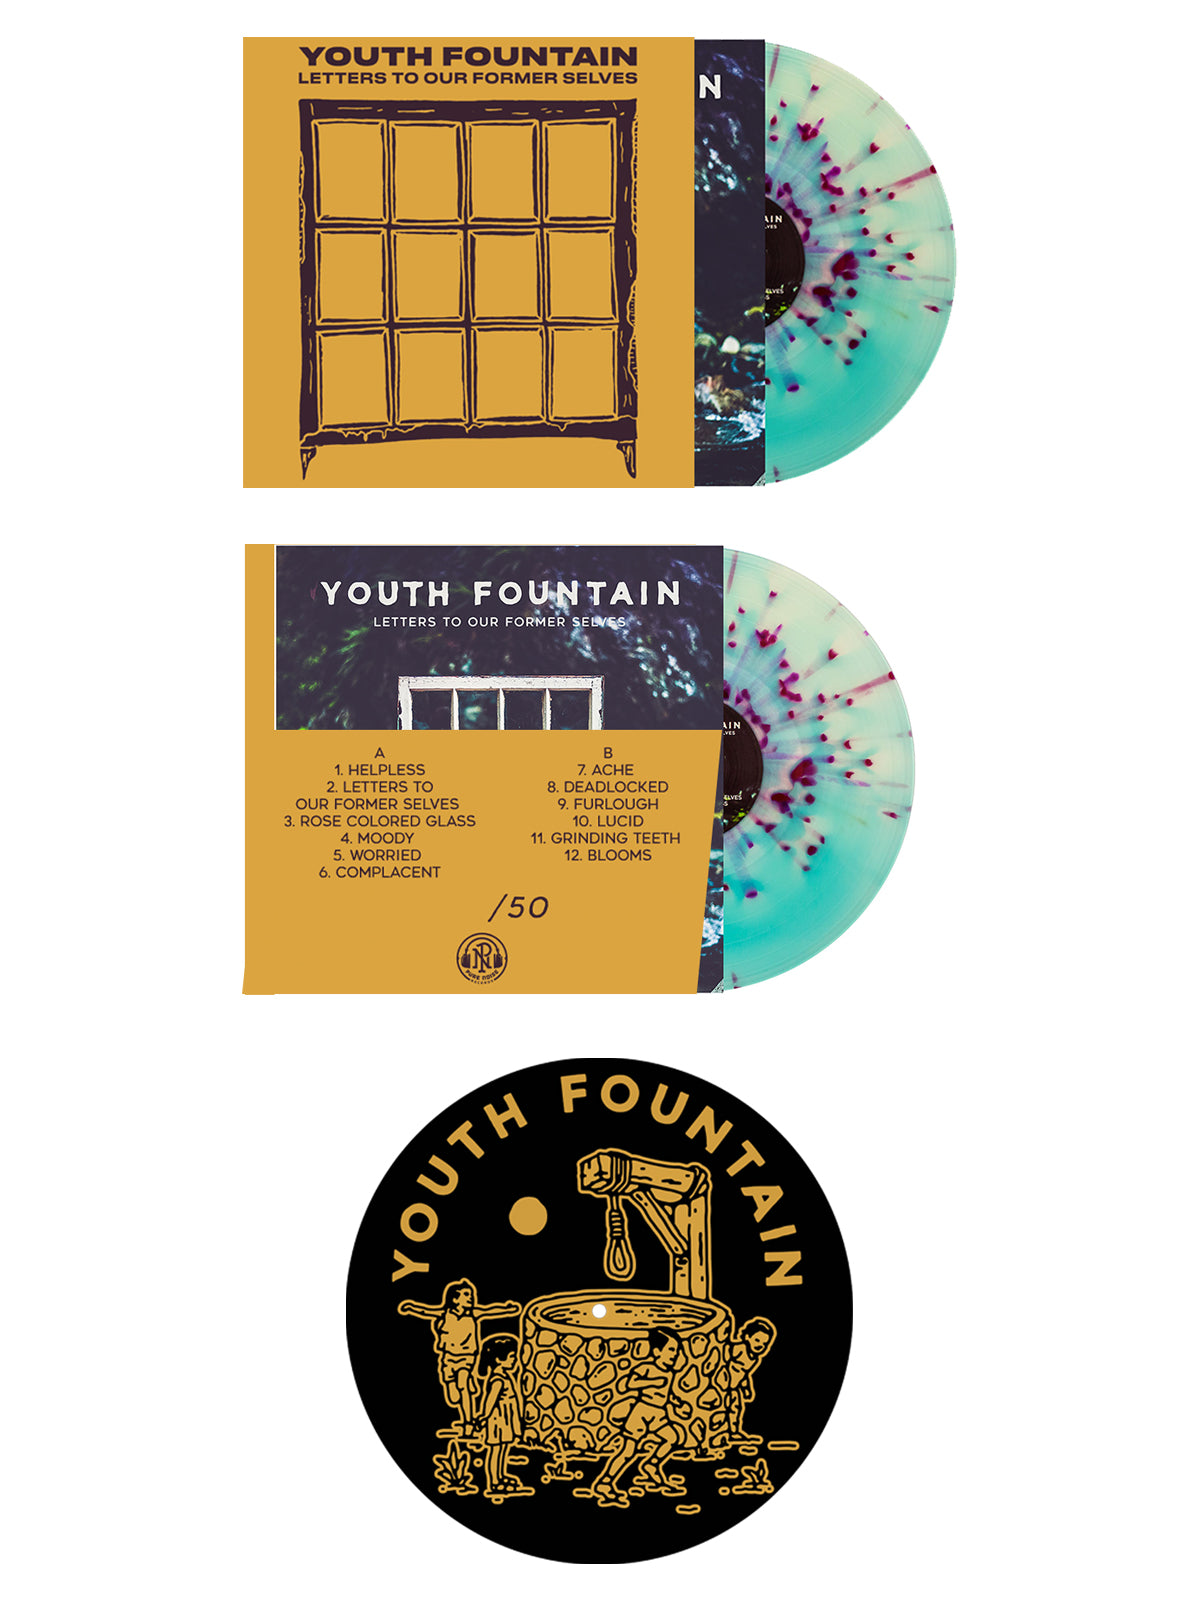 Youth Fountain - Letters to Our Former Selves Vinyl + Slipmat Bundle